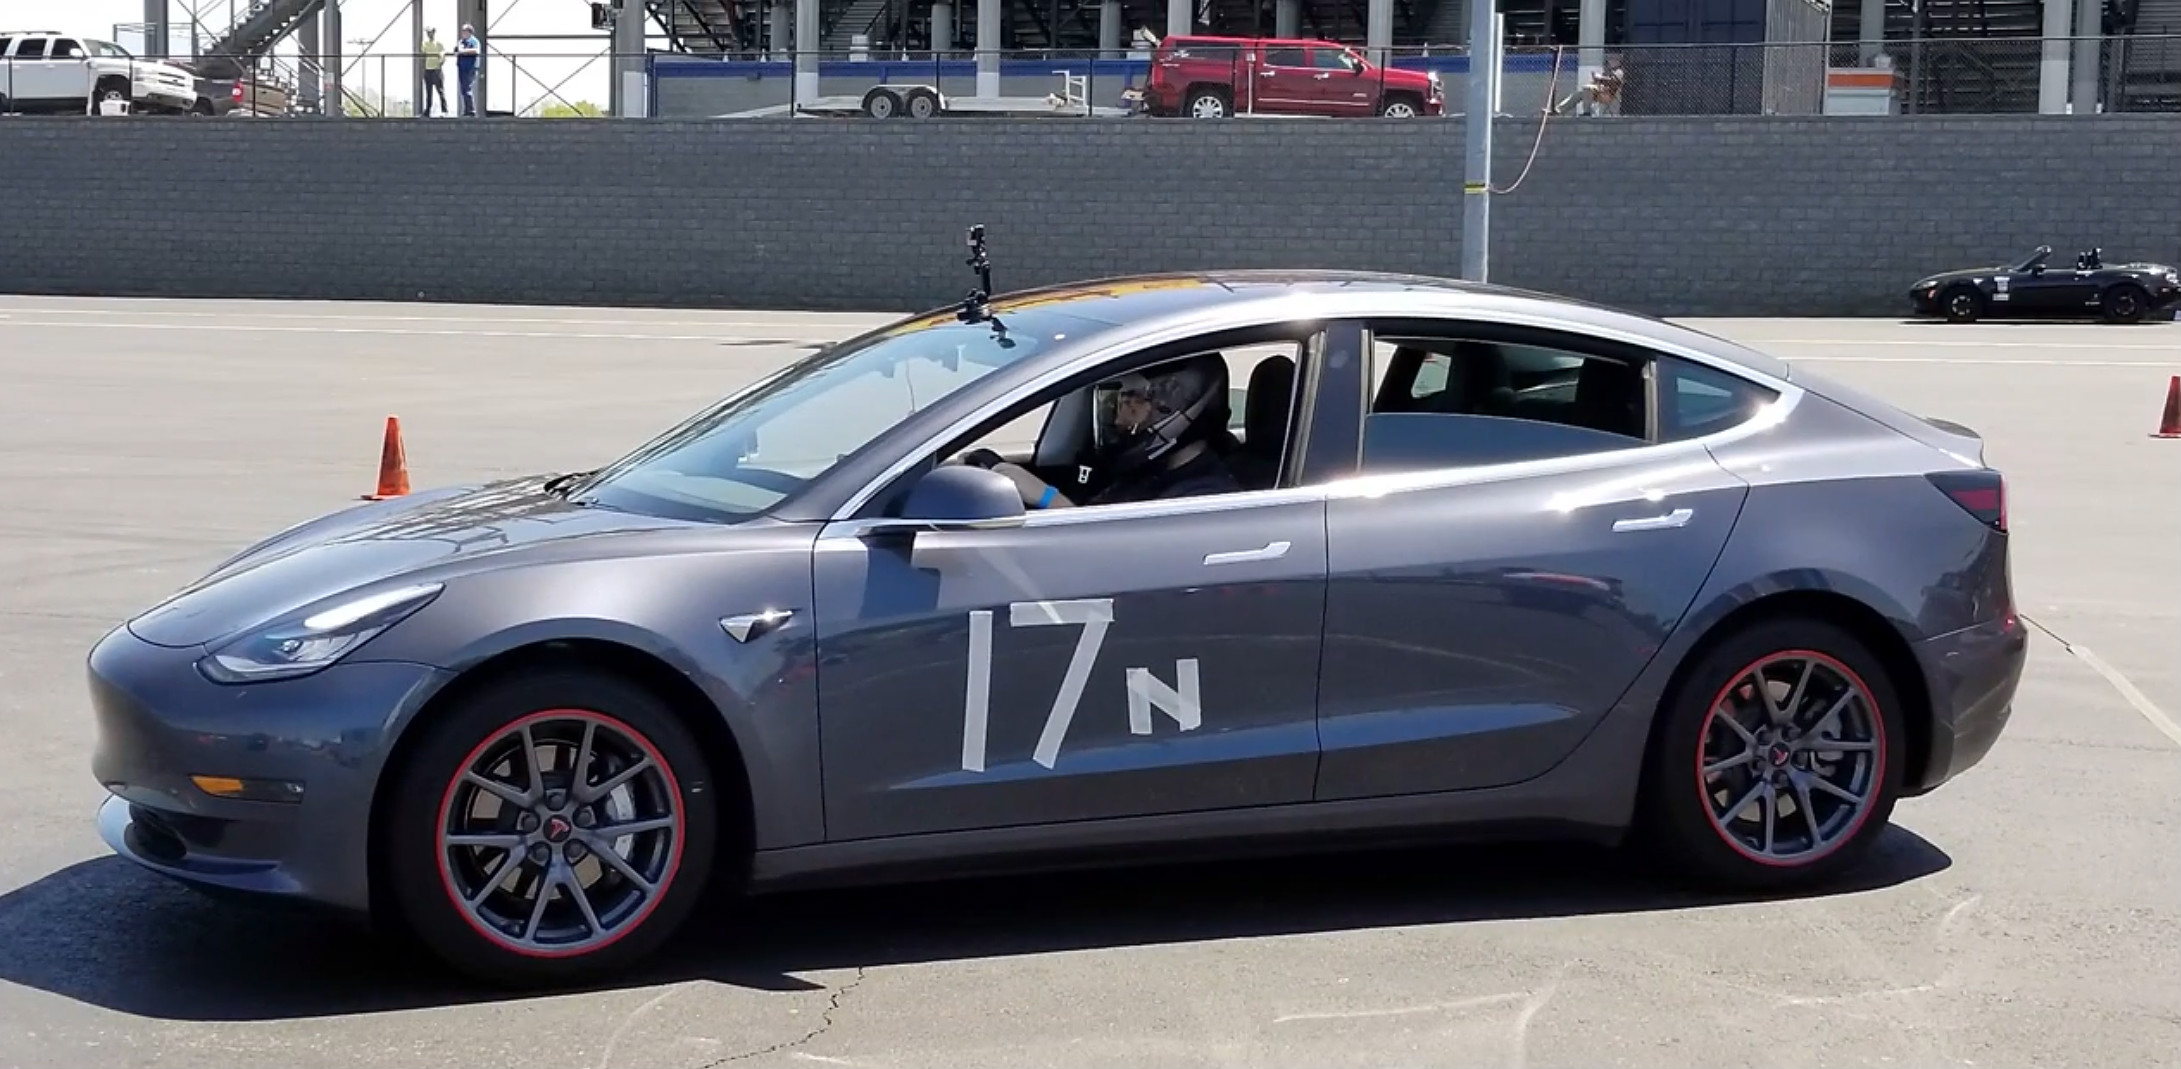 Model 3 autocross run 1 [Credit: Chestley Couch/YouTube]